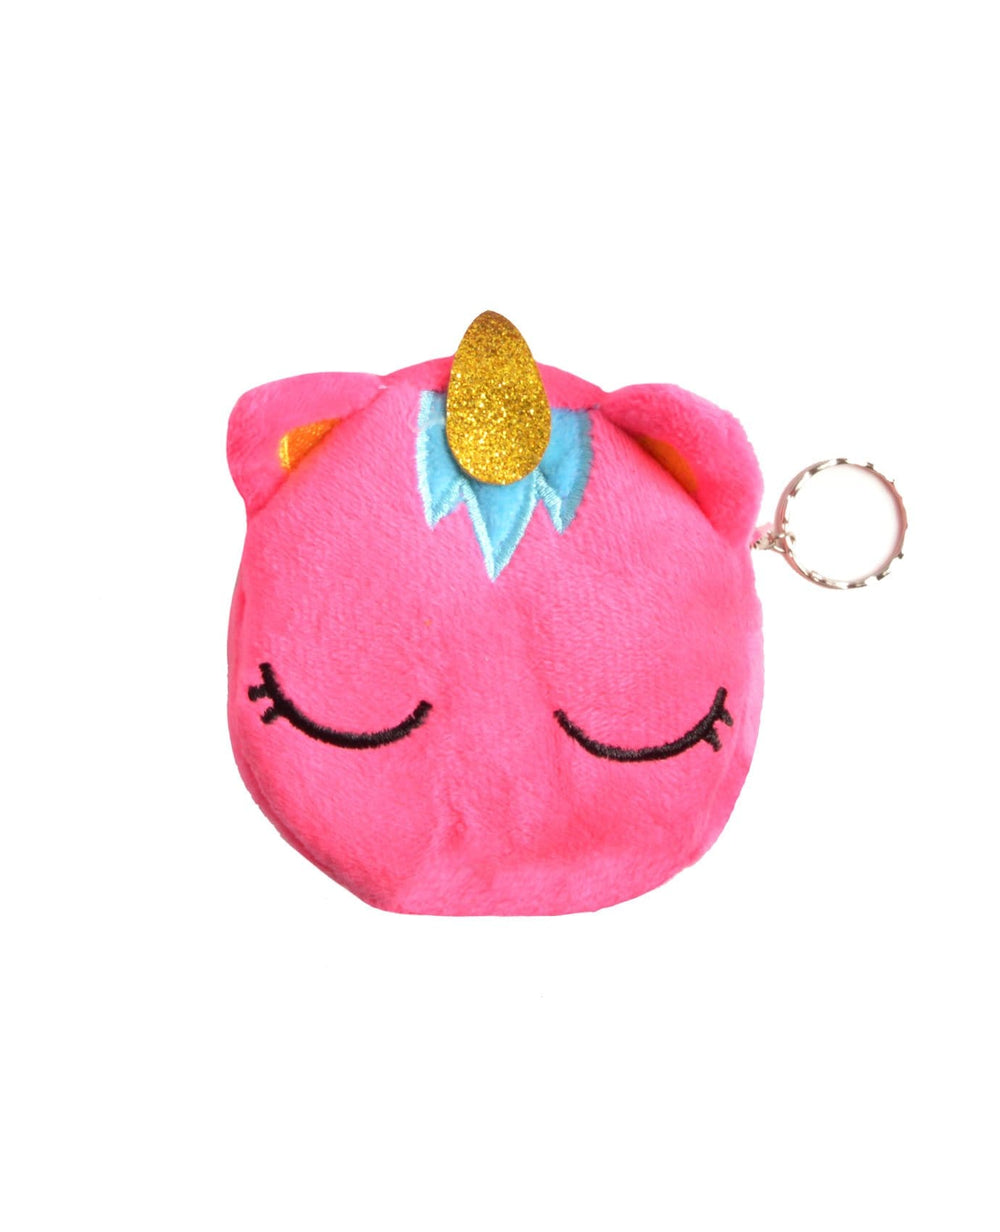 Sleeping Unicorn Coin Purse